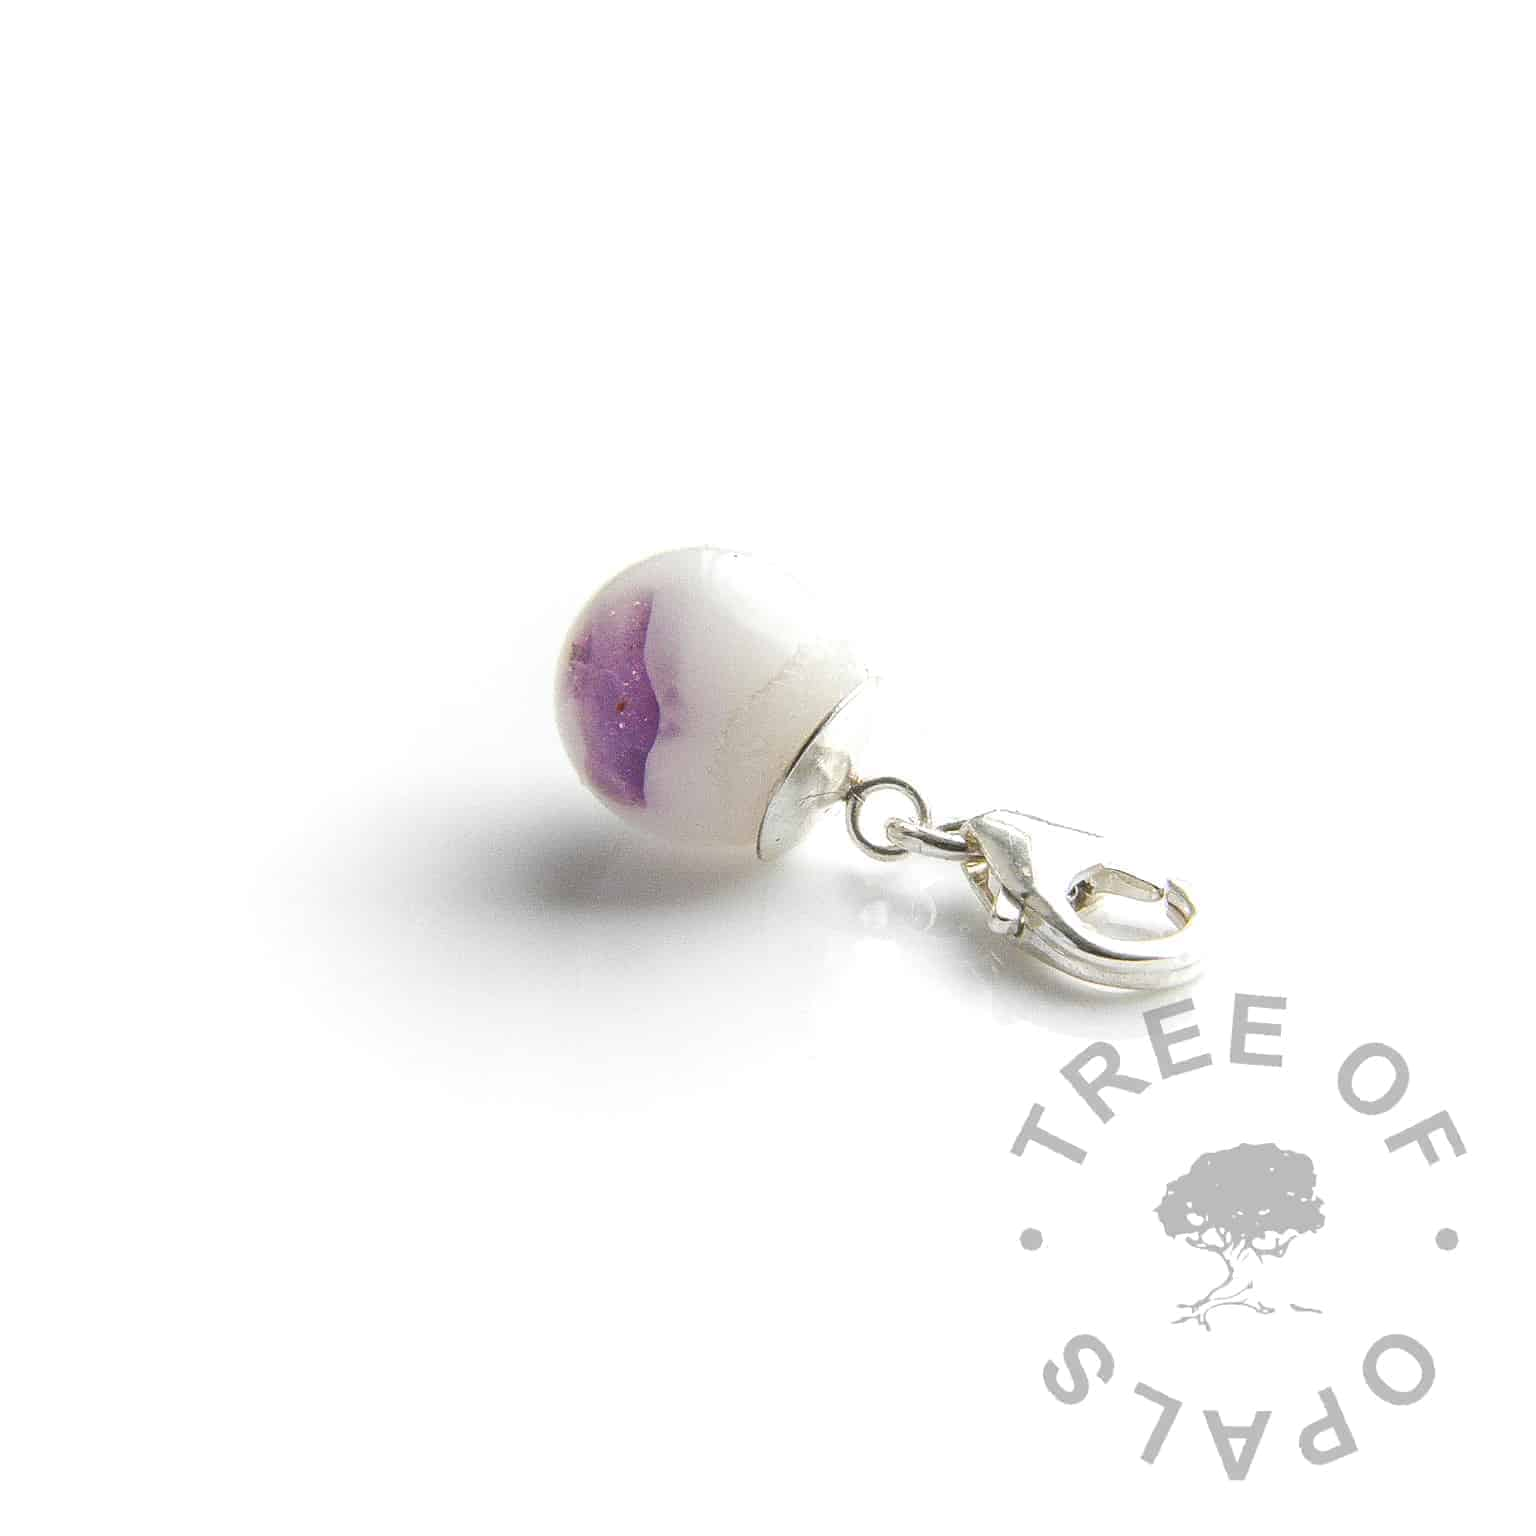 "amethyst breastmilk pearl dangle charm for large link chain bracelets like Thomas Sabo.  Amethyst is the February birthstone and ""we tried our best"" boobie award or for many other reasons"